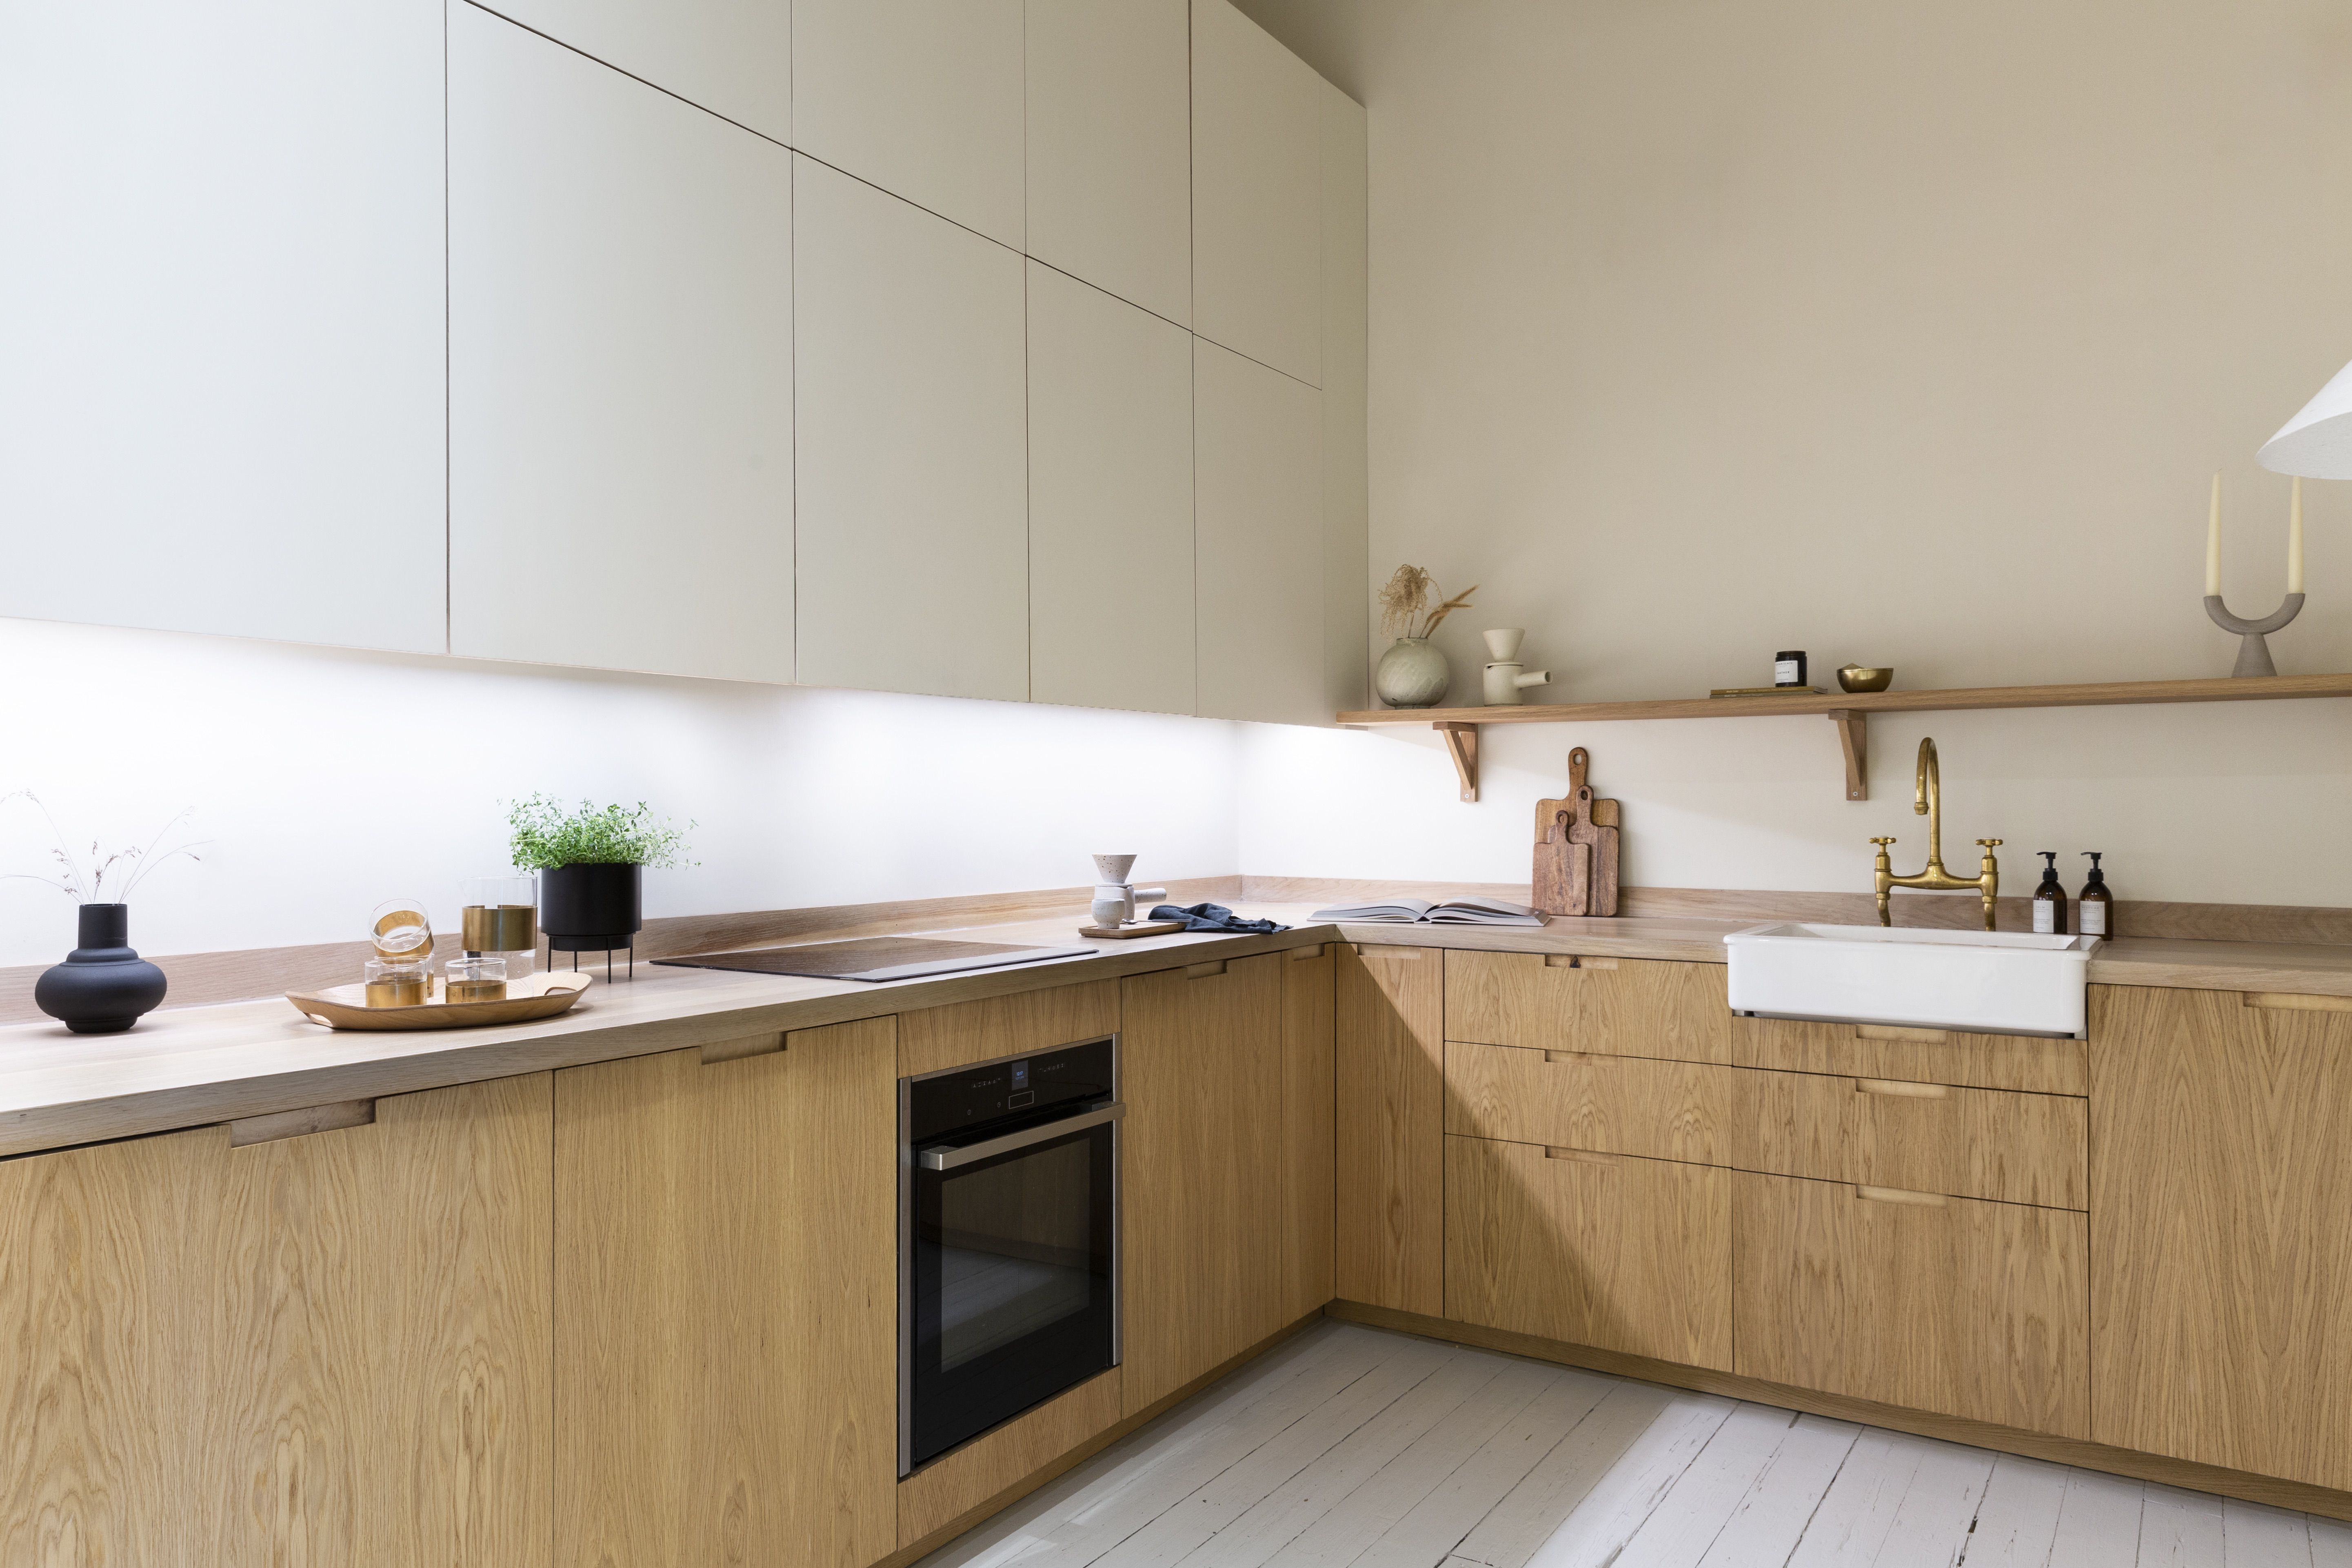 Oak Wood Kitchen in 2020 Wood kitchen, Wood